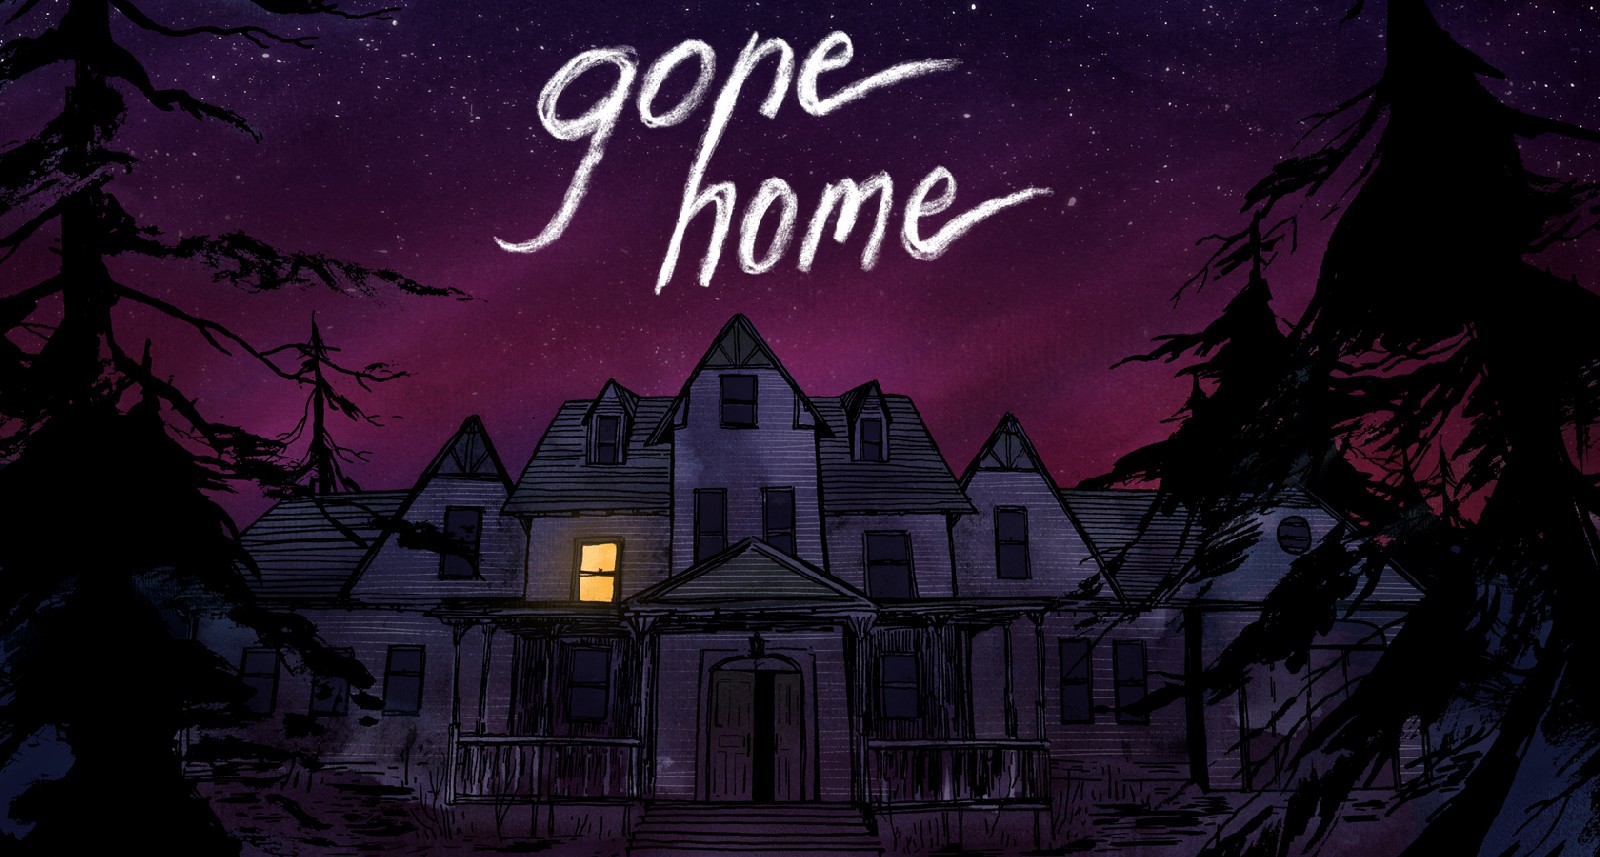 Family history: source analysis in Gone Home